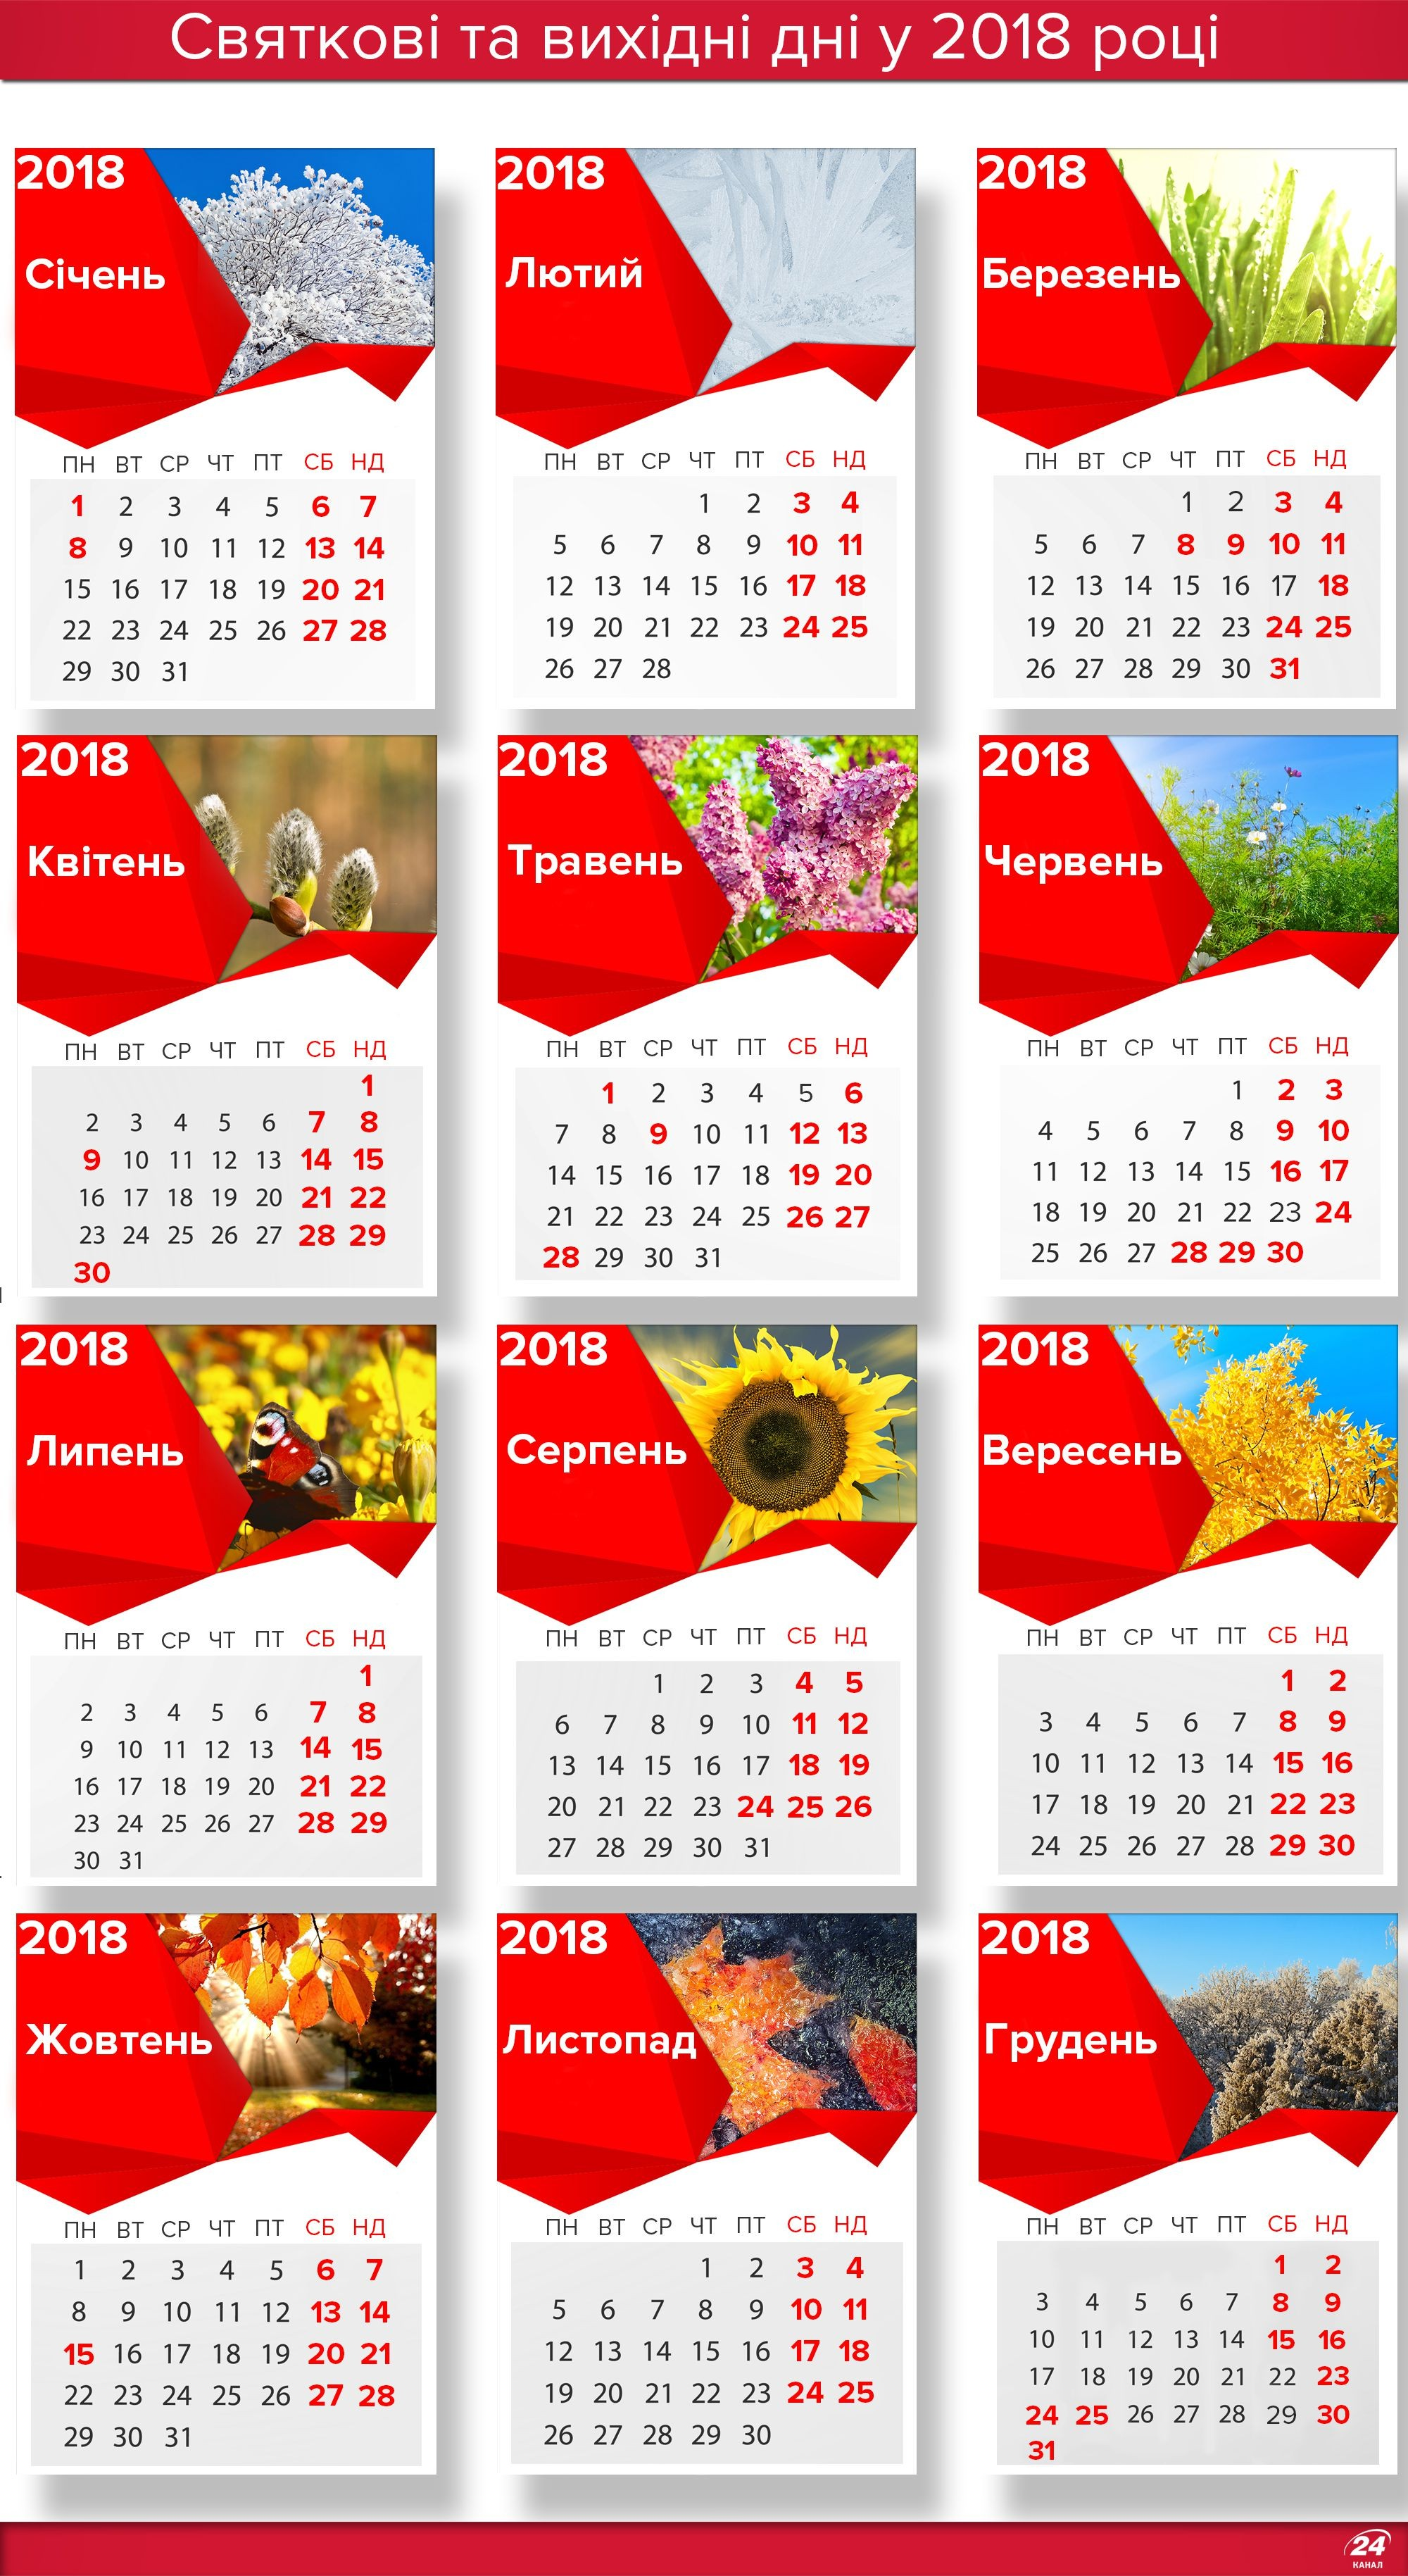 National Day Calendar March Mejores Y Más Novedosos 2018 Holidays In Ukraine Of National Day Calendar March Más Recientes Citizenship Classes Adults northwest Georgia Regional Library System